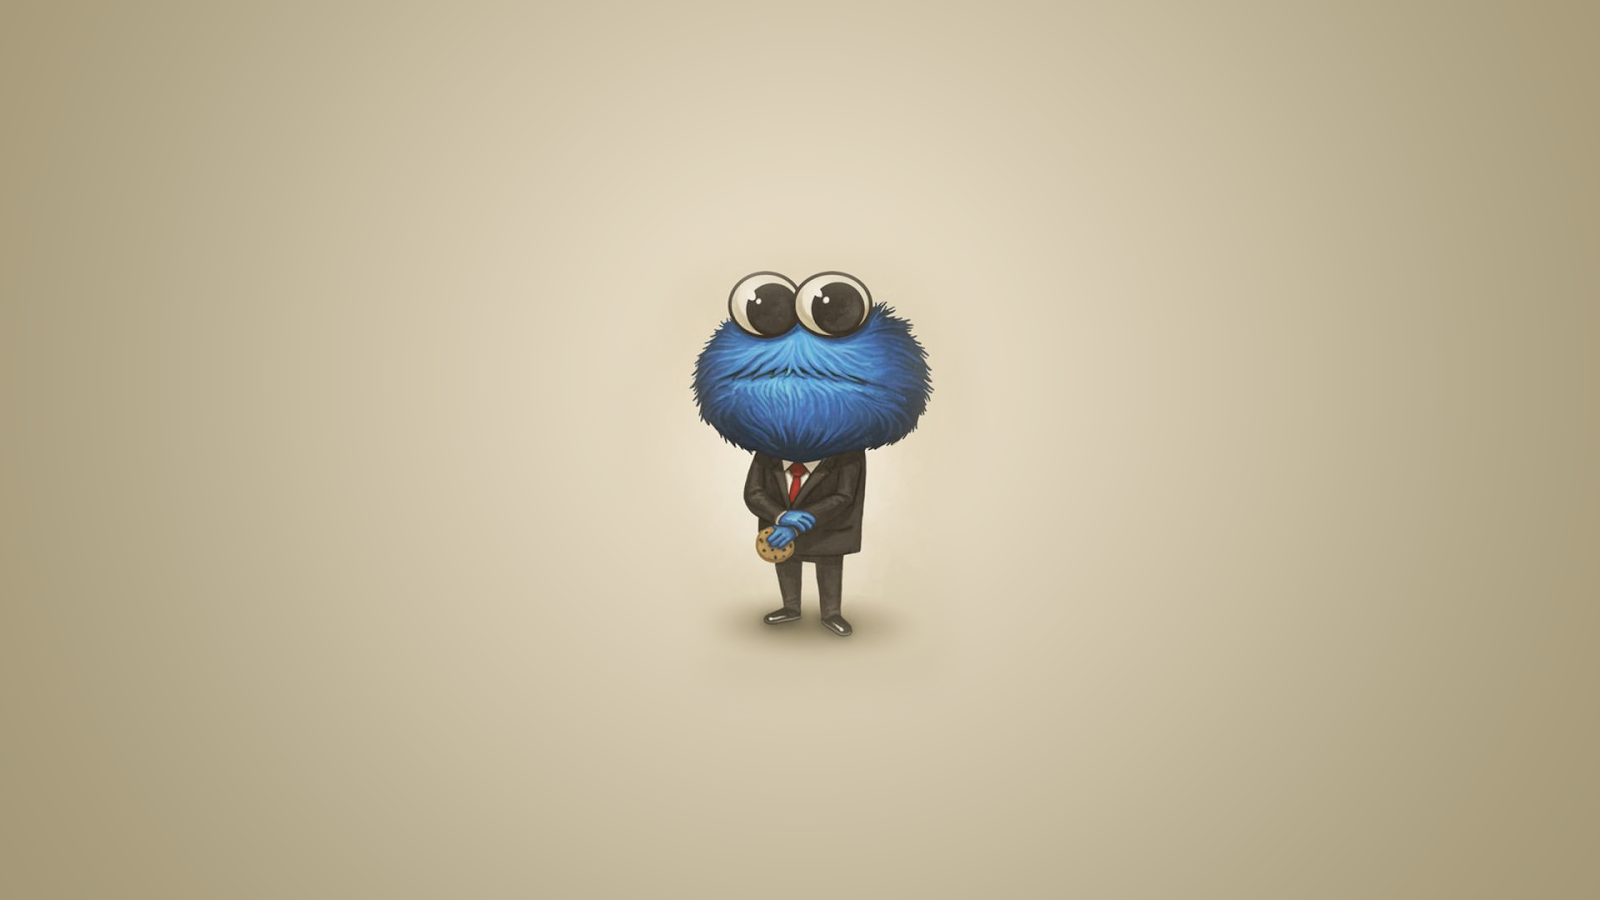 Cookie Monster 39935465 Wallpaper for Free | Top HD Widescreen Images